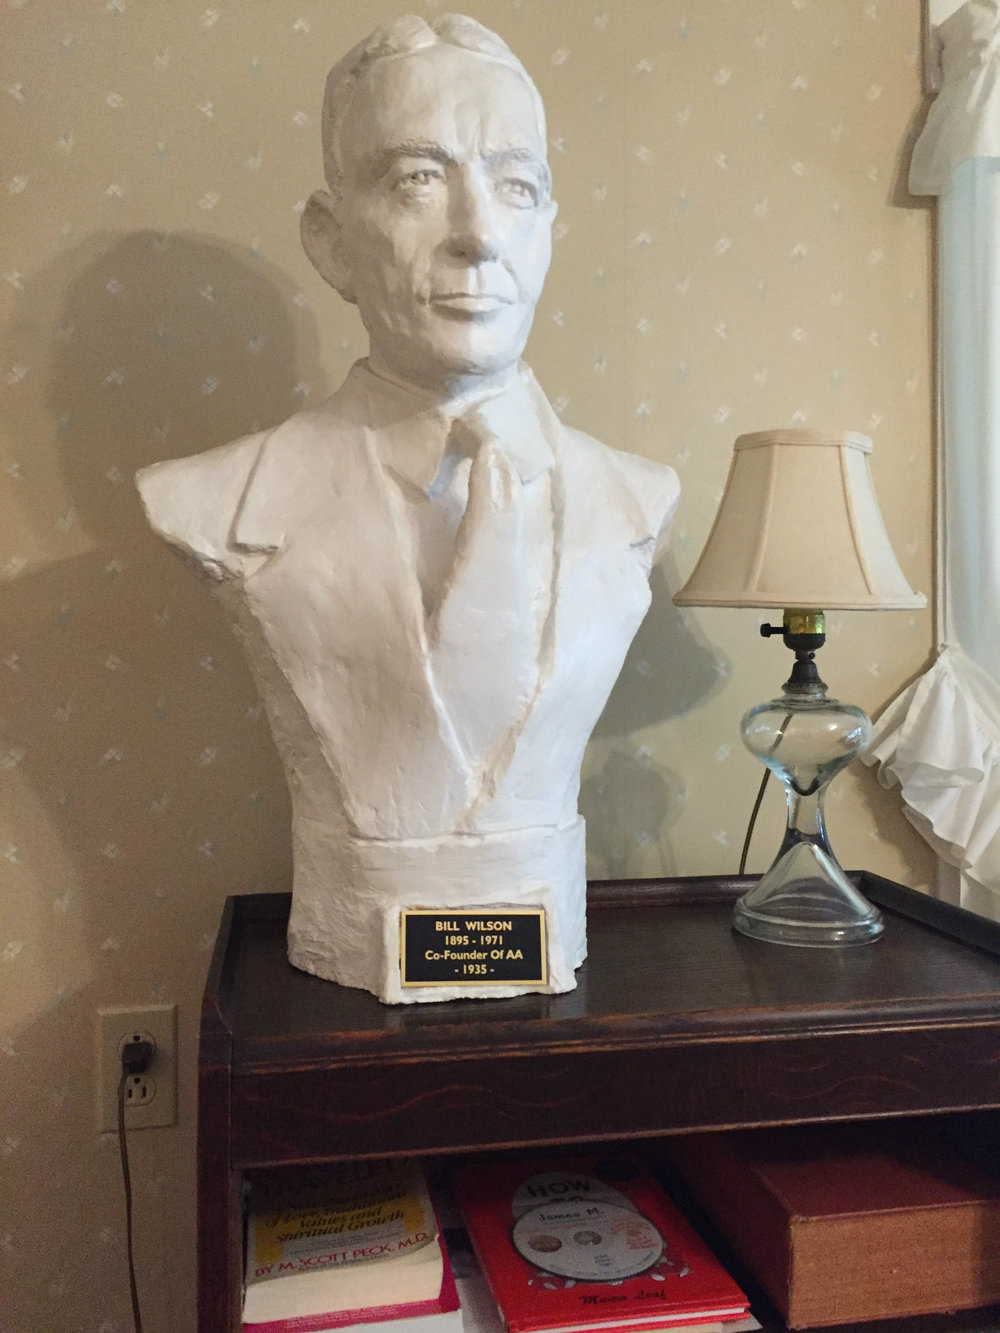 A bust of Bill Wilson located in the hotel where he was born.